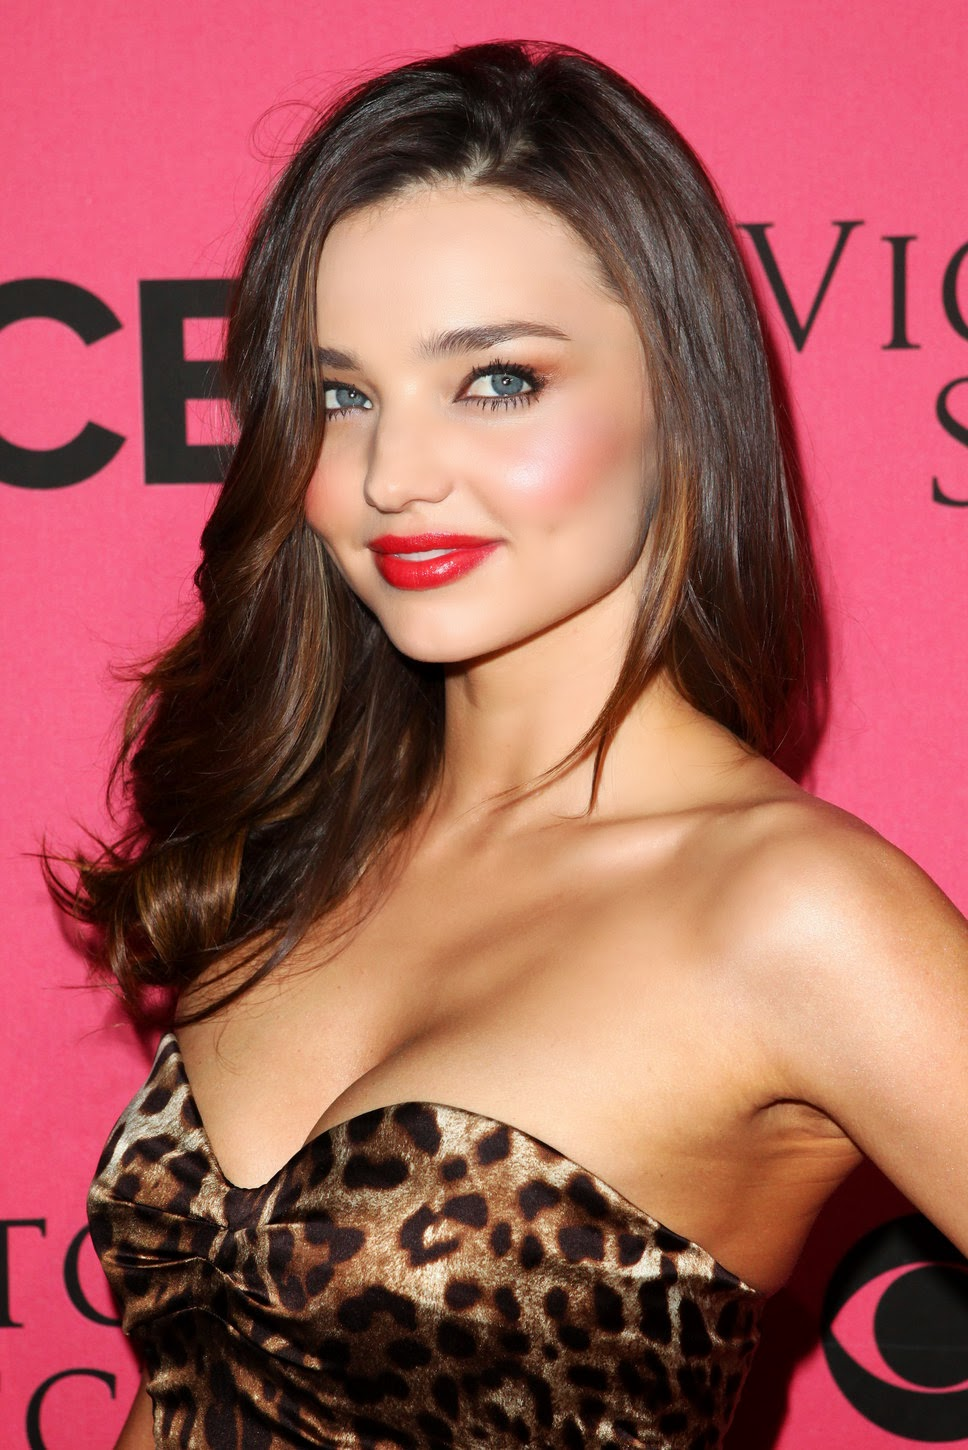 Miranda Kerr S Best Style Looks Ever: Make Up Style: Miranda Kerr Inspired Make Up Look